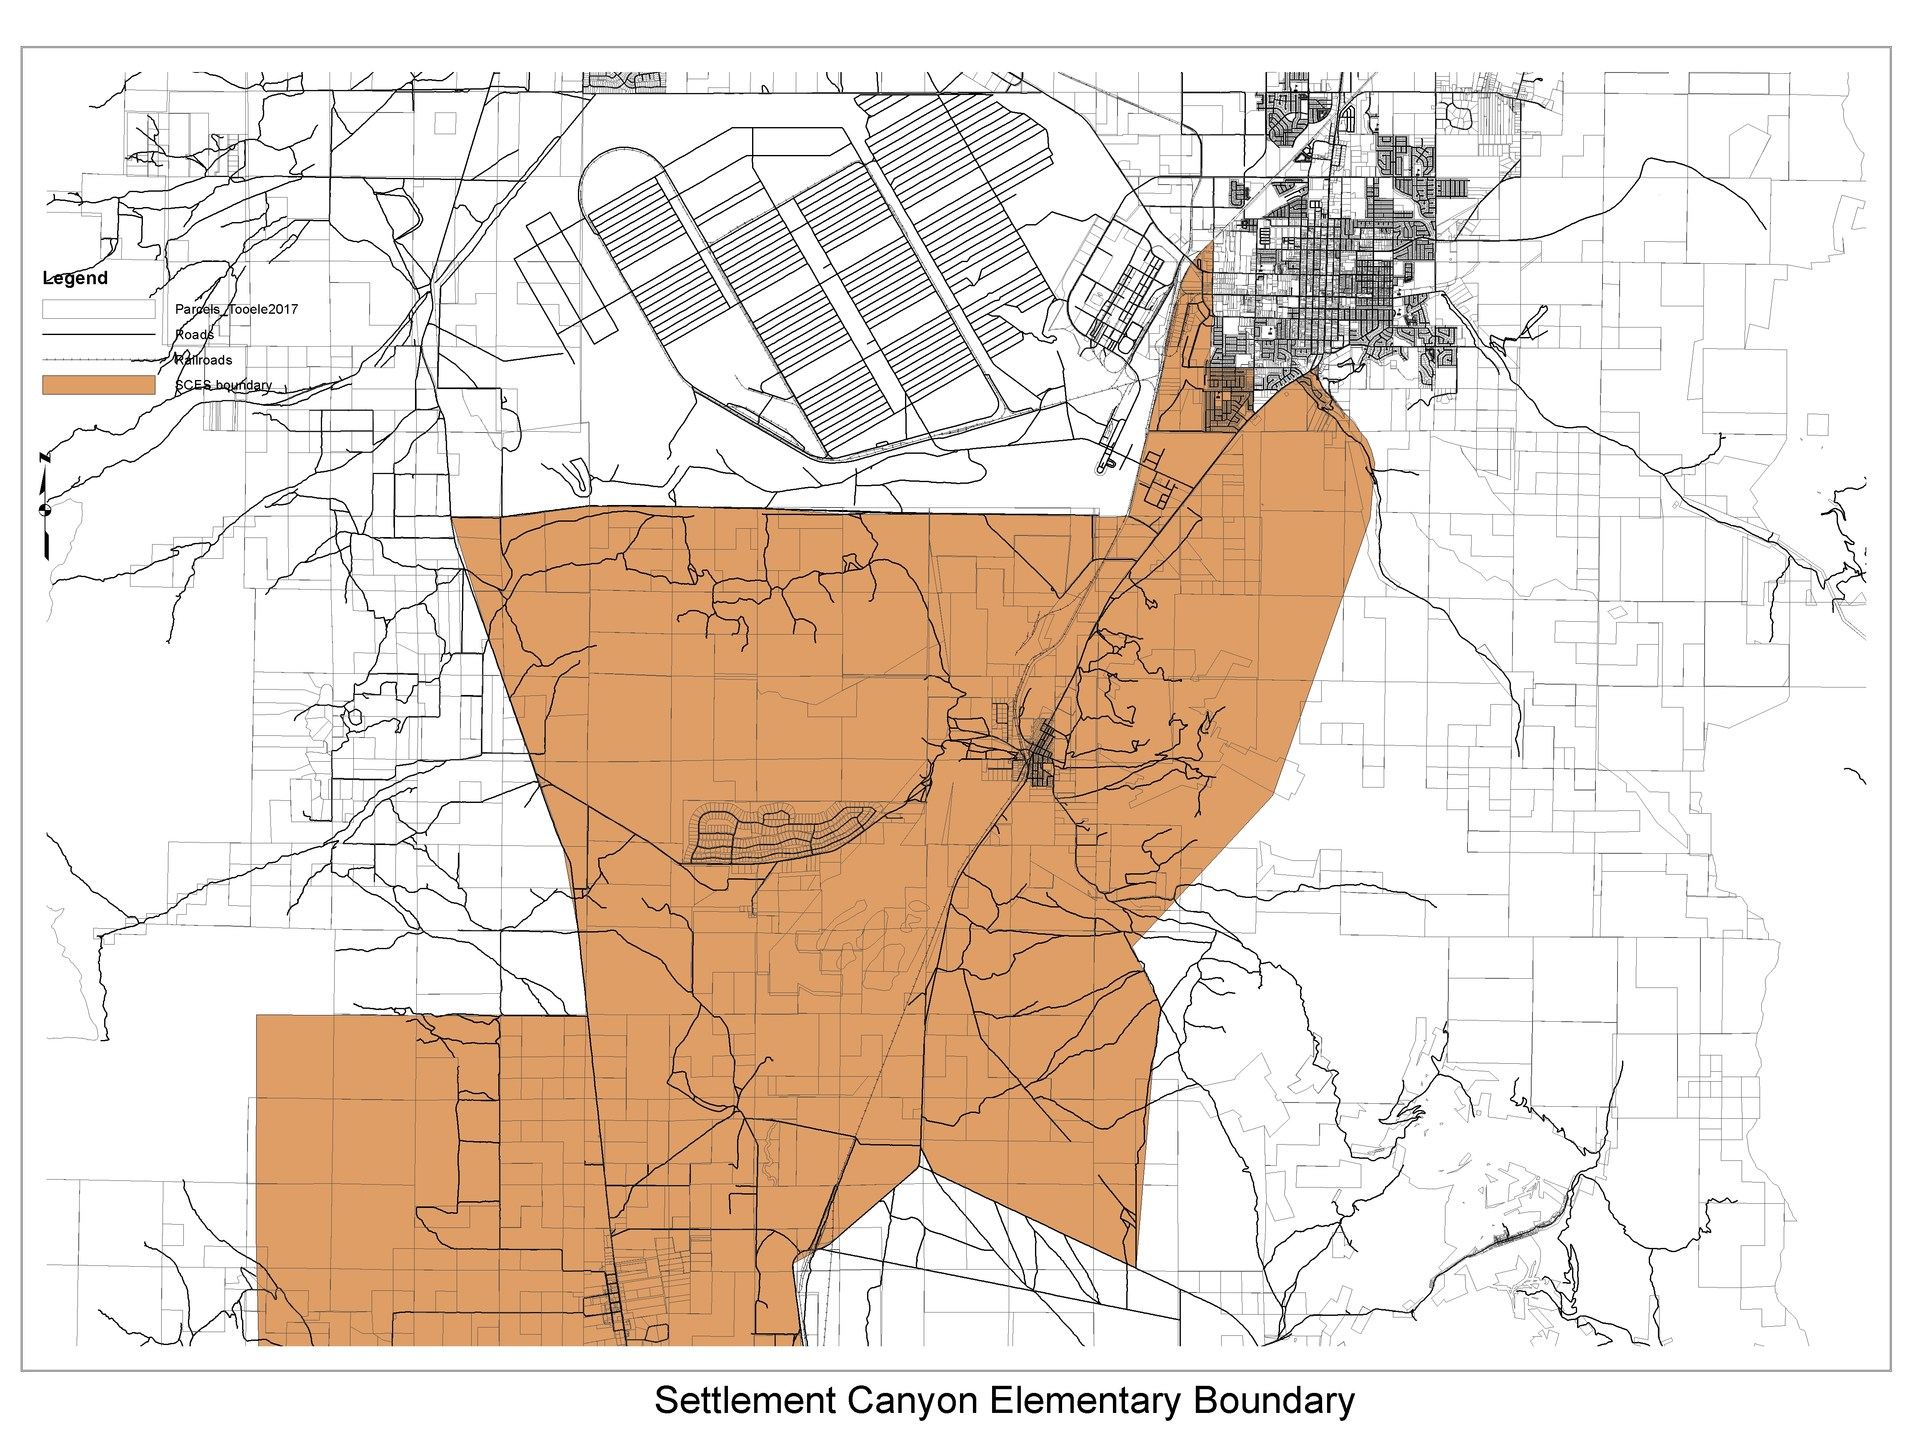 Settlement Canyon Elementary School boundary